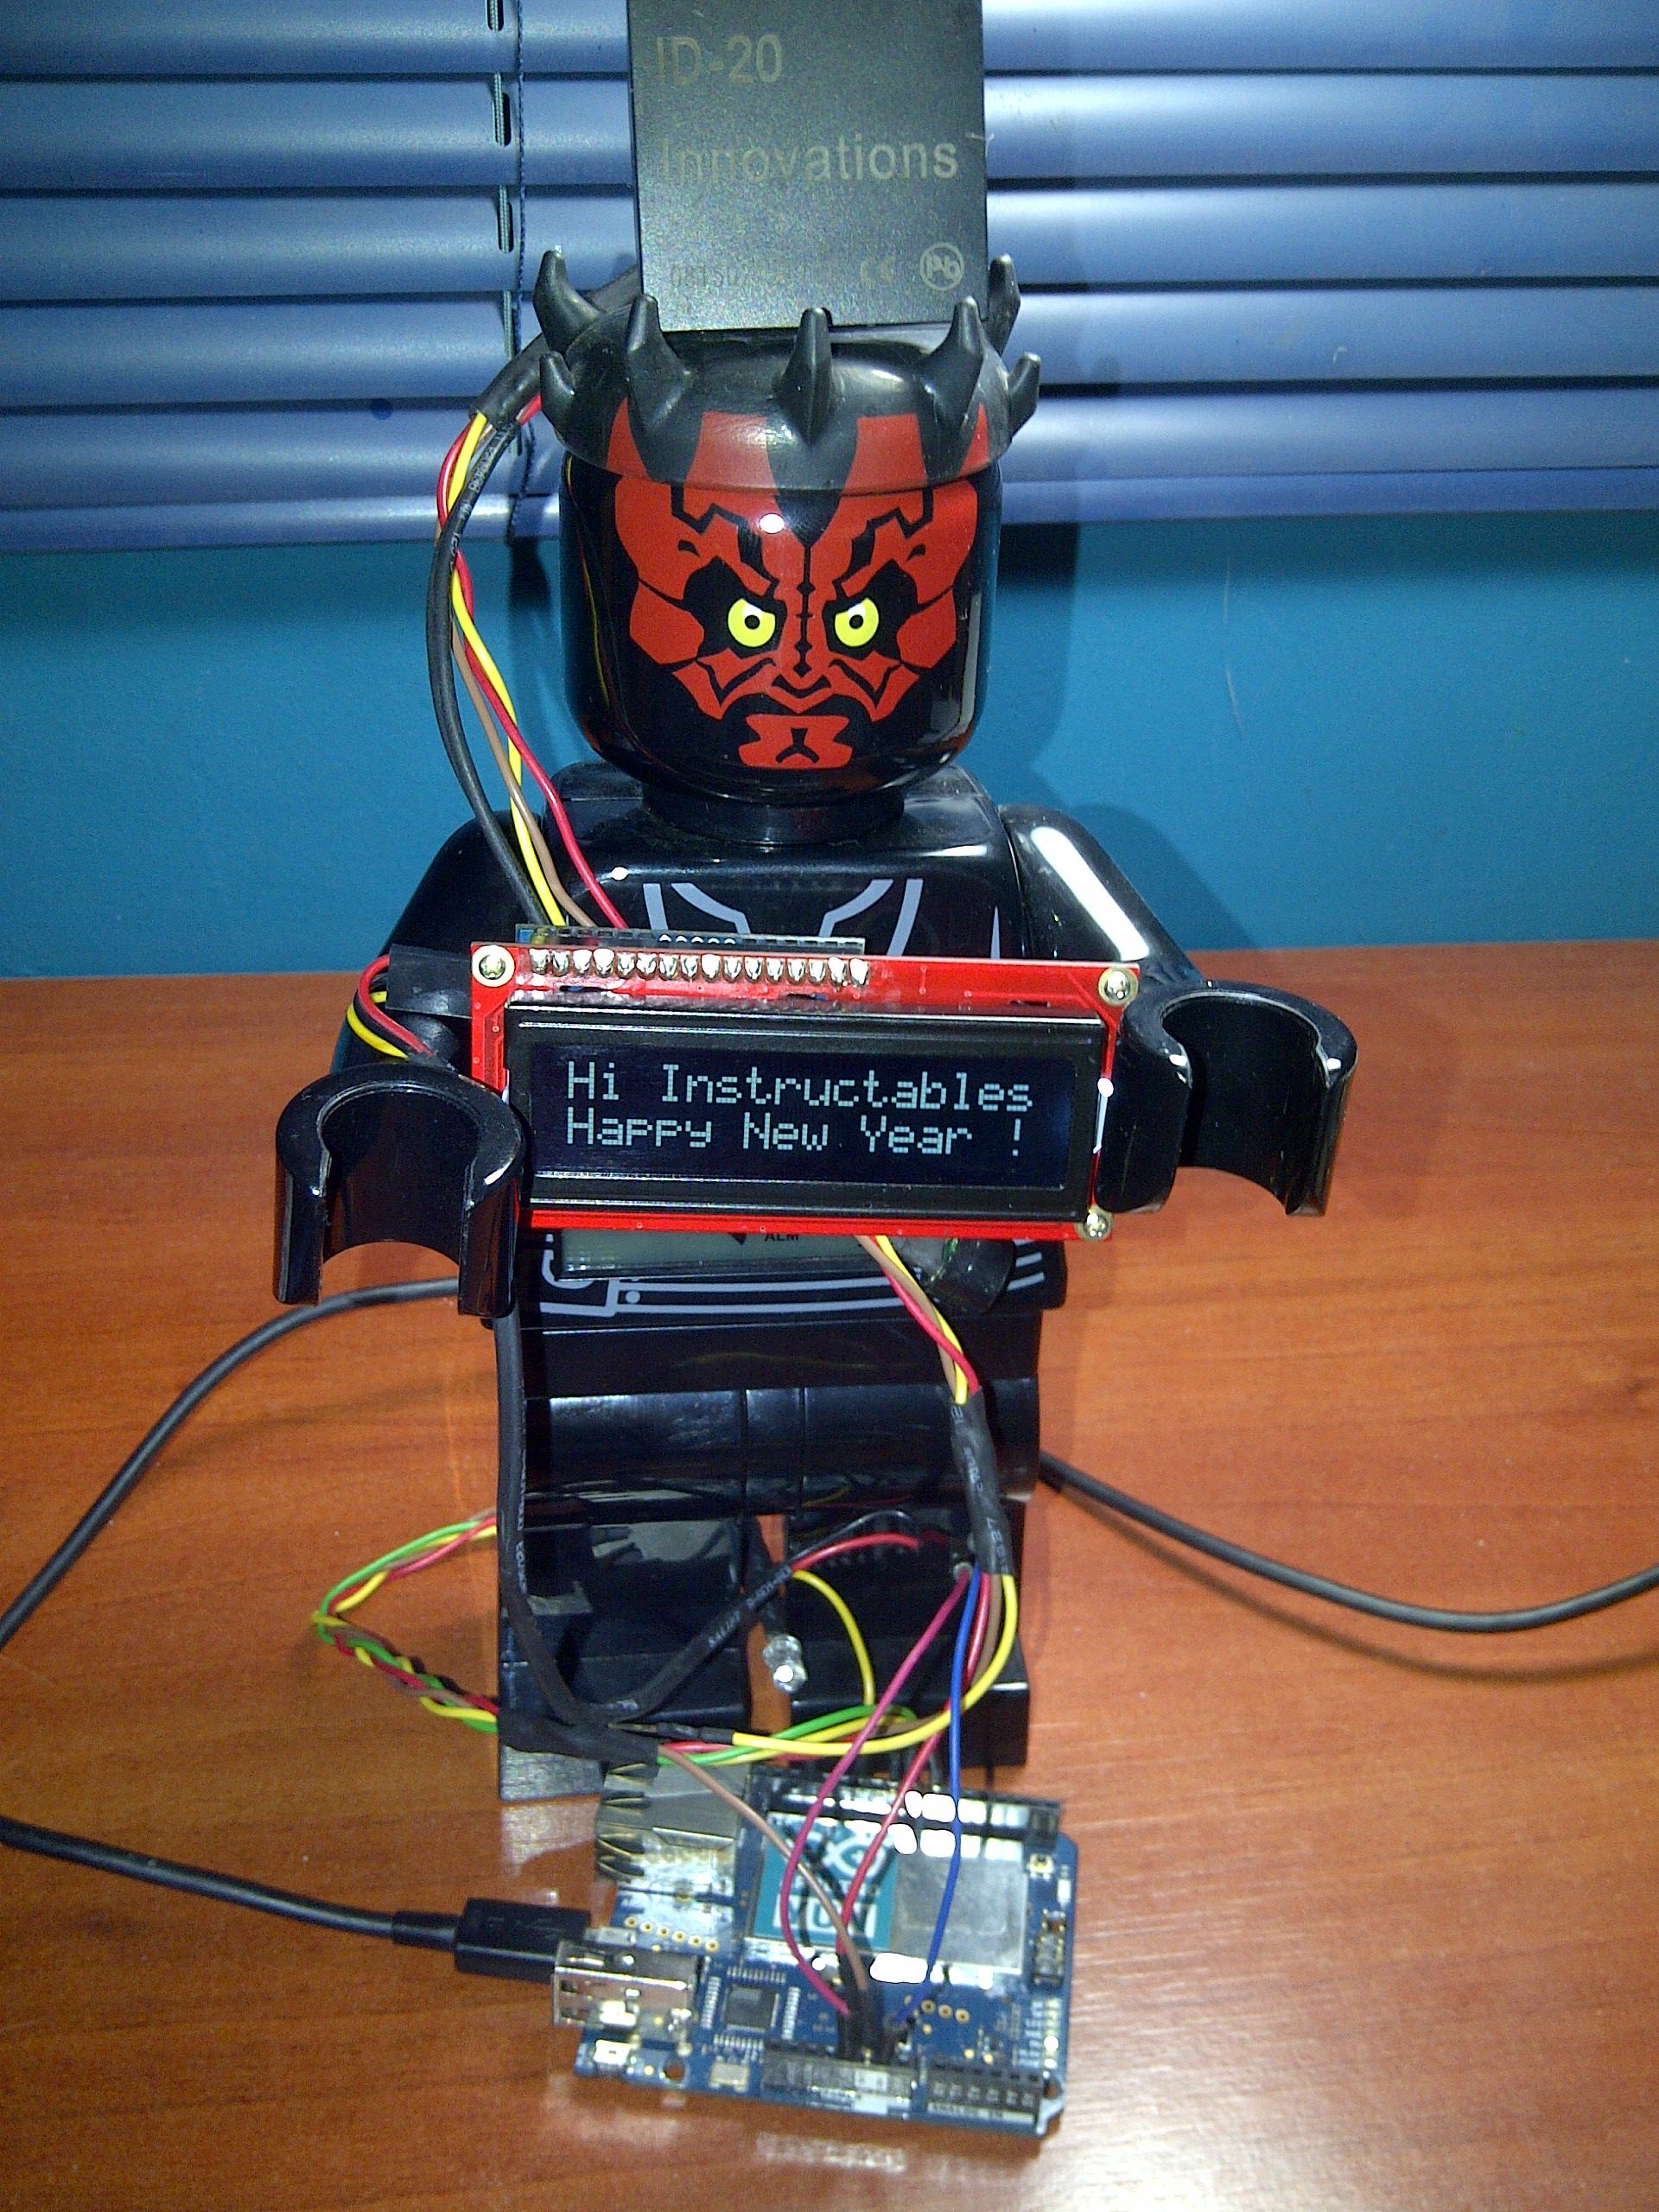 Control Access of Arduino YÚN with MySQL, PHP5 and Python